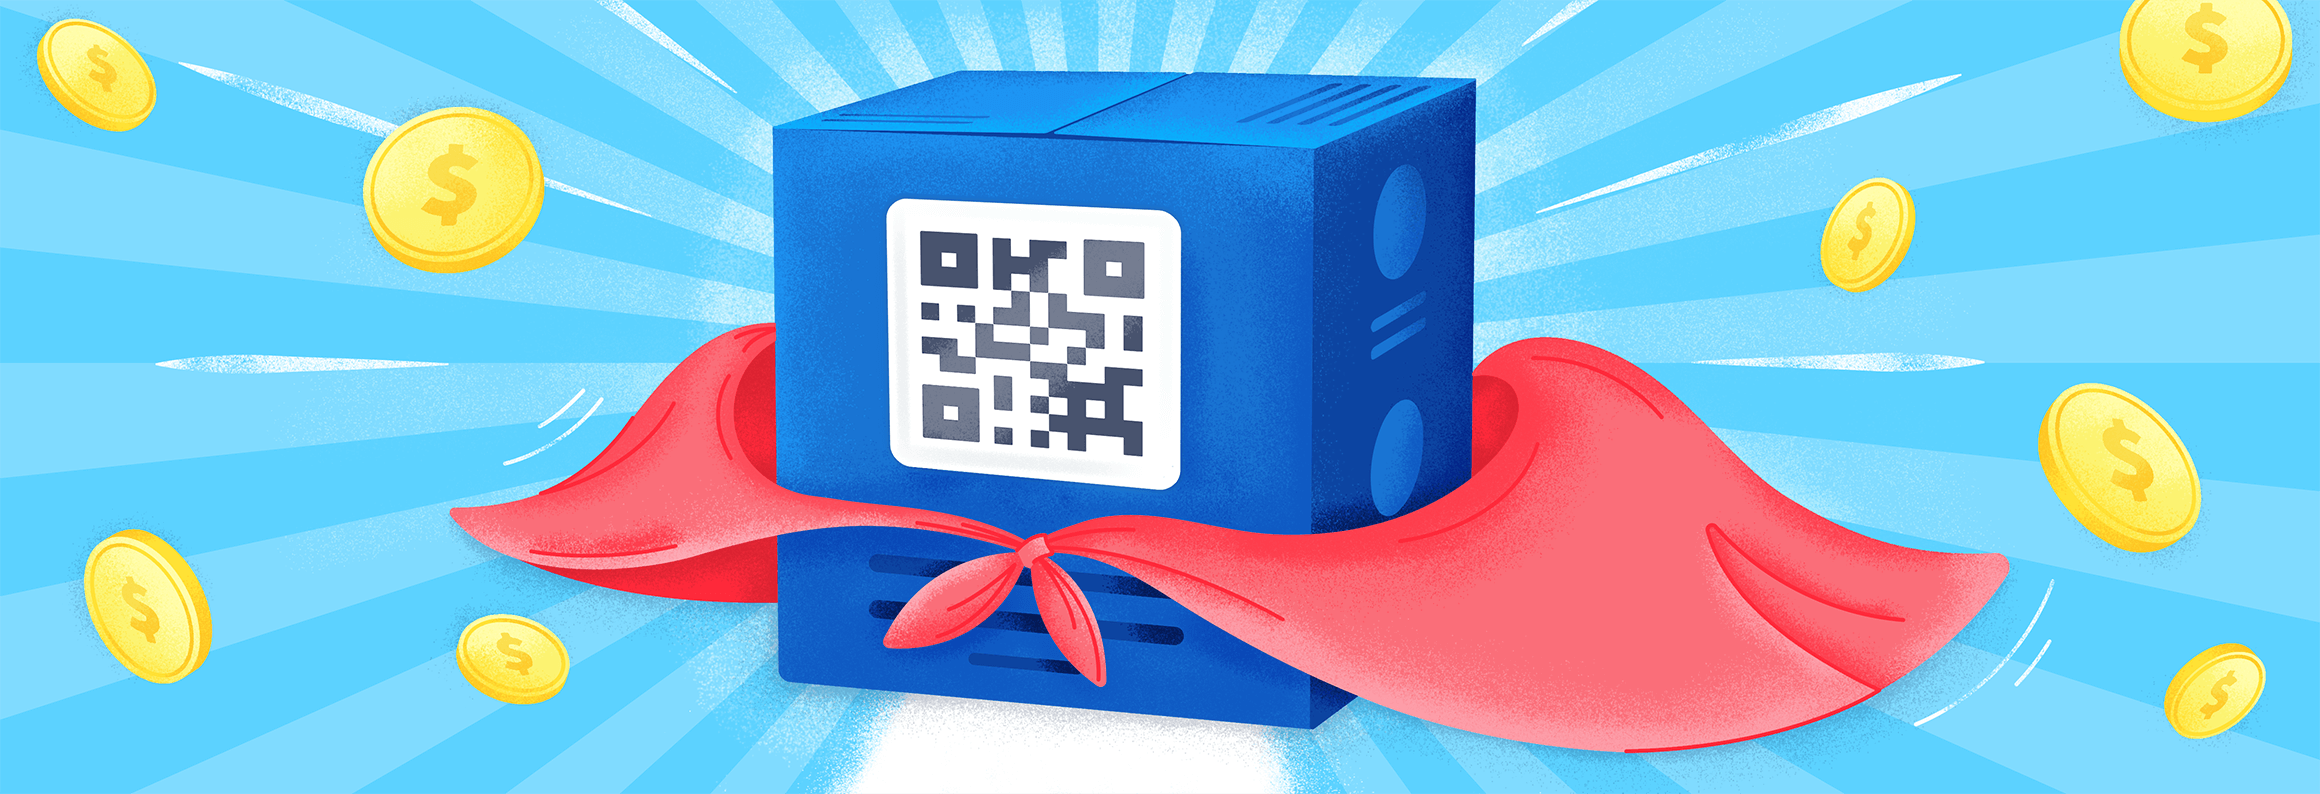 Boost product marketing with QR Codes